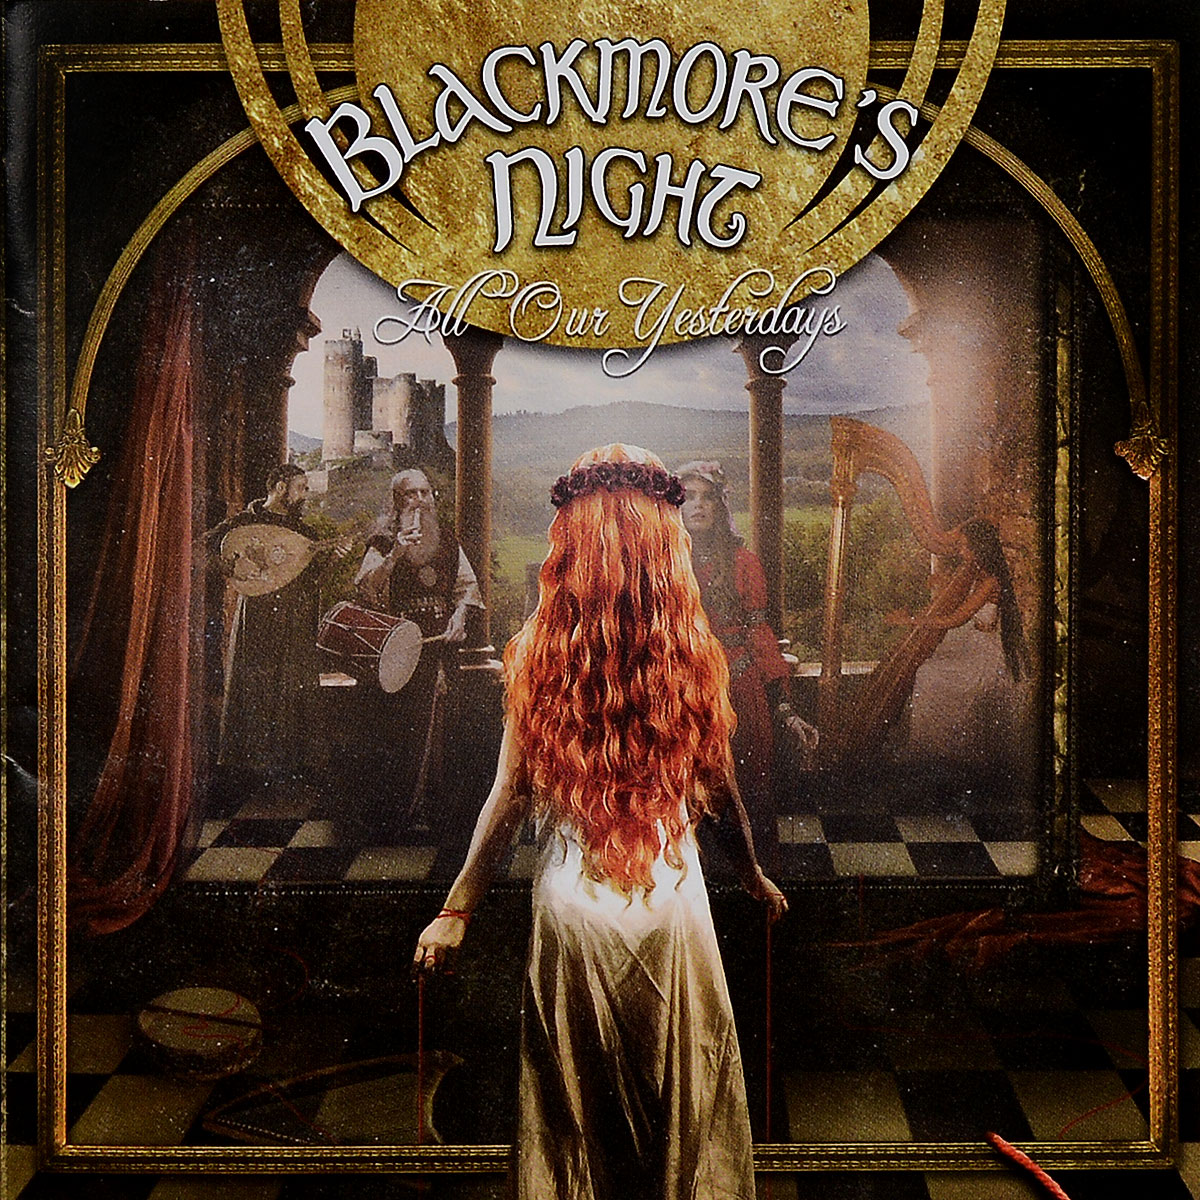 Blackmore's Night Blackmore's Night. All Our Yesterdays